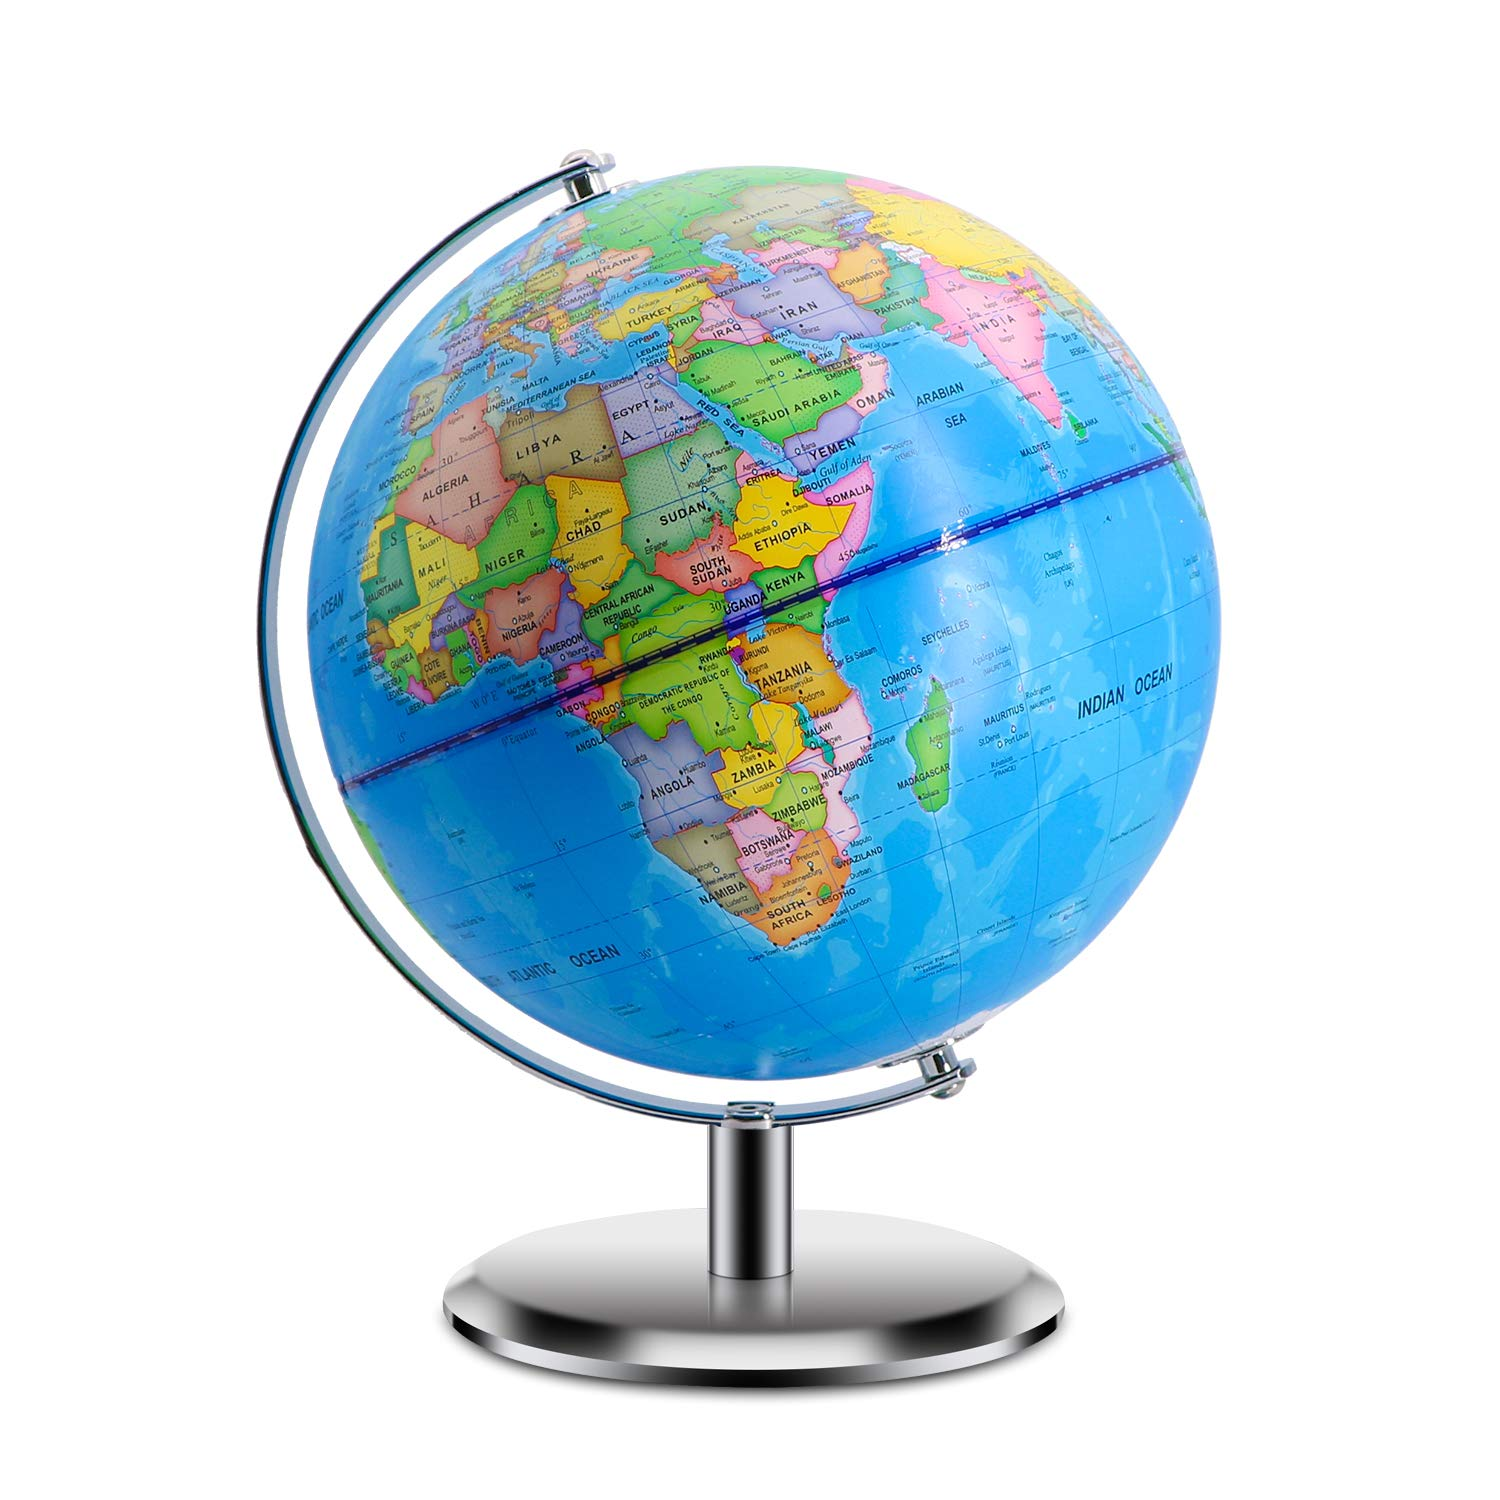 World Globes for Kids - Larger Size 12'' Educational World Globe with Stand Adults Desktop Geographic Gobles Discovery World Globe Educational Toy for Children - Geography Learning Toy (Blue) by Sprite Beat